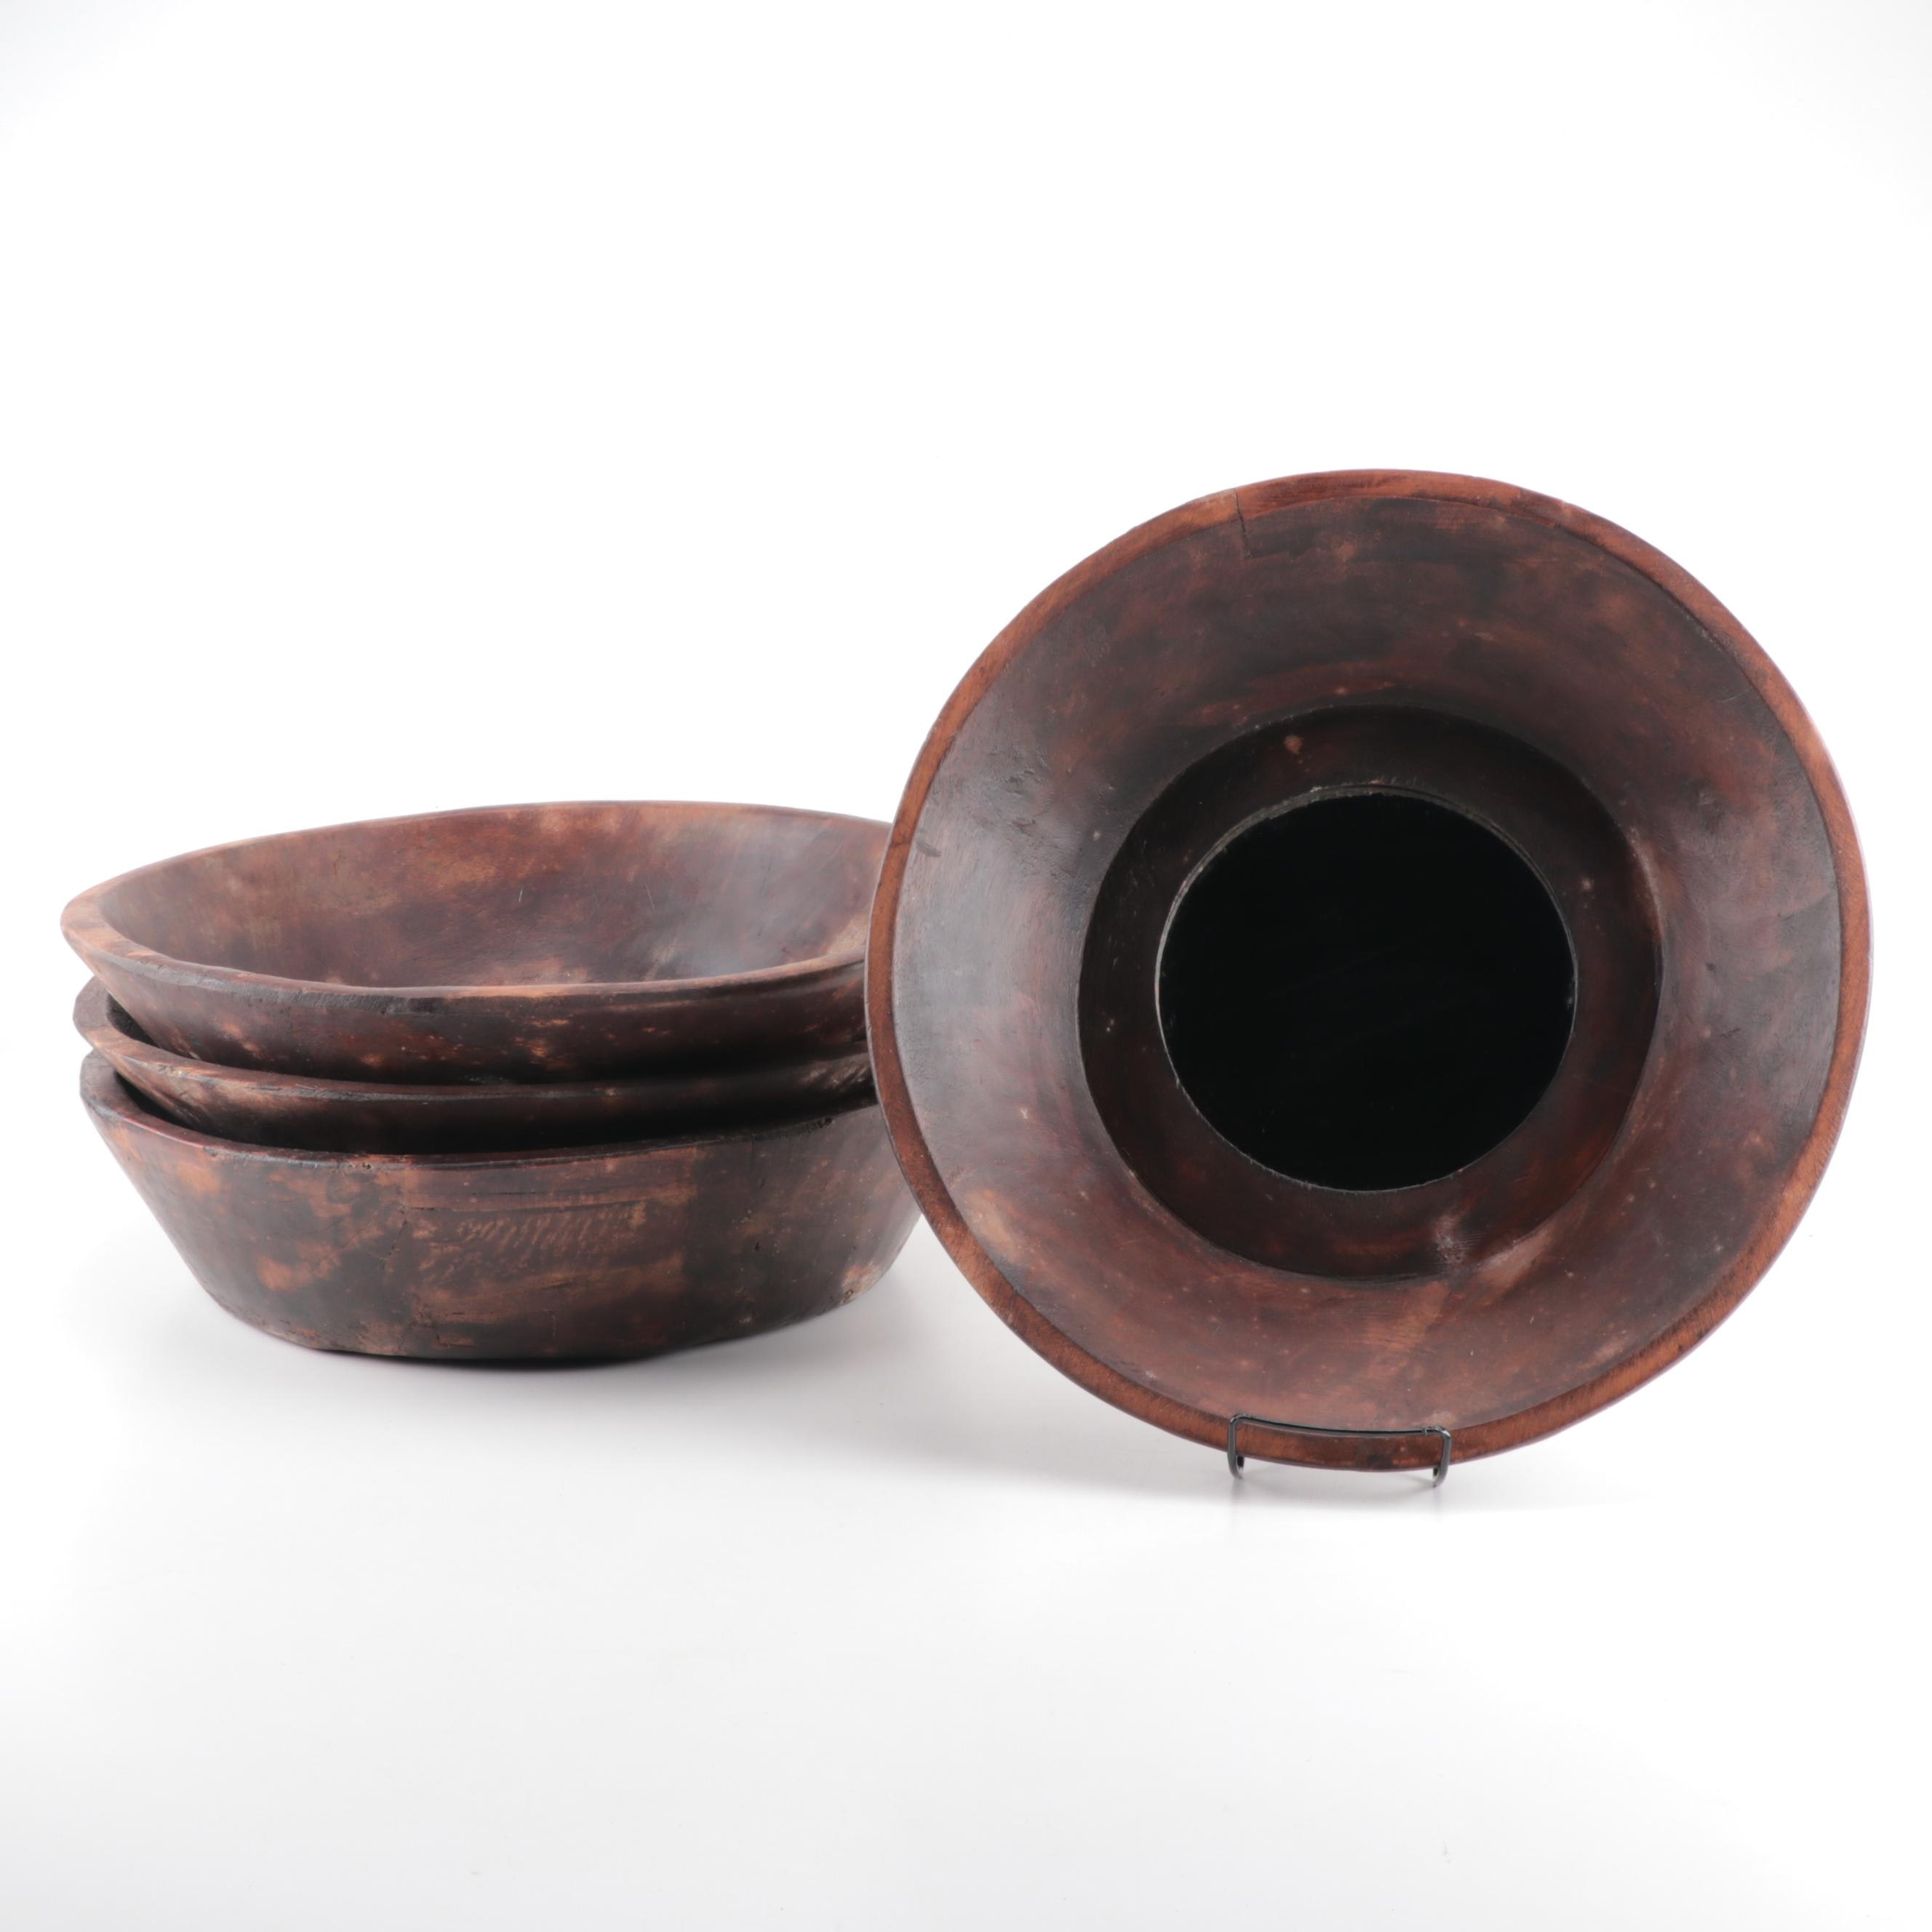 Decorative Wooden Bowls with Mirrored Centers